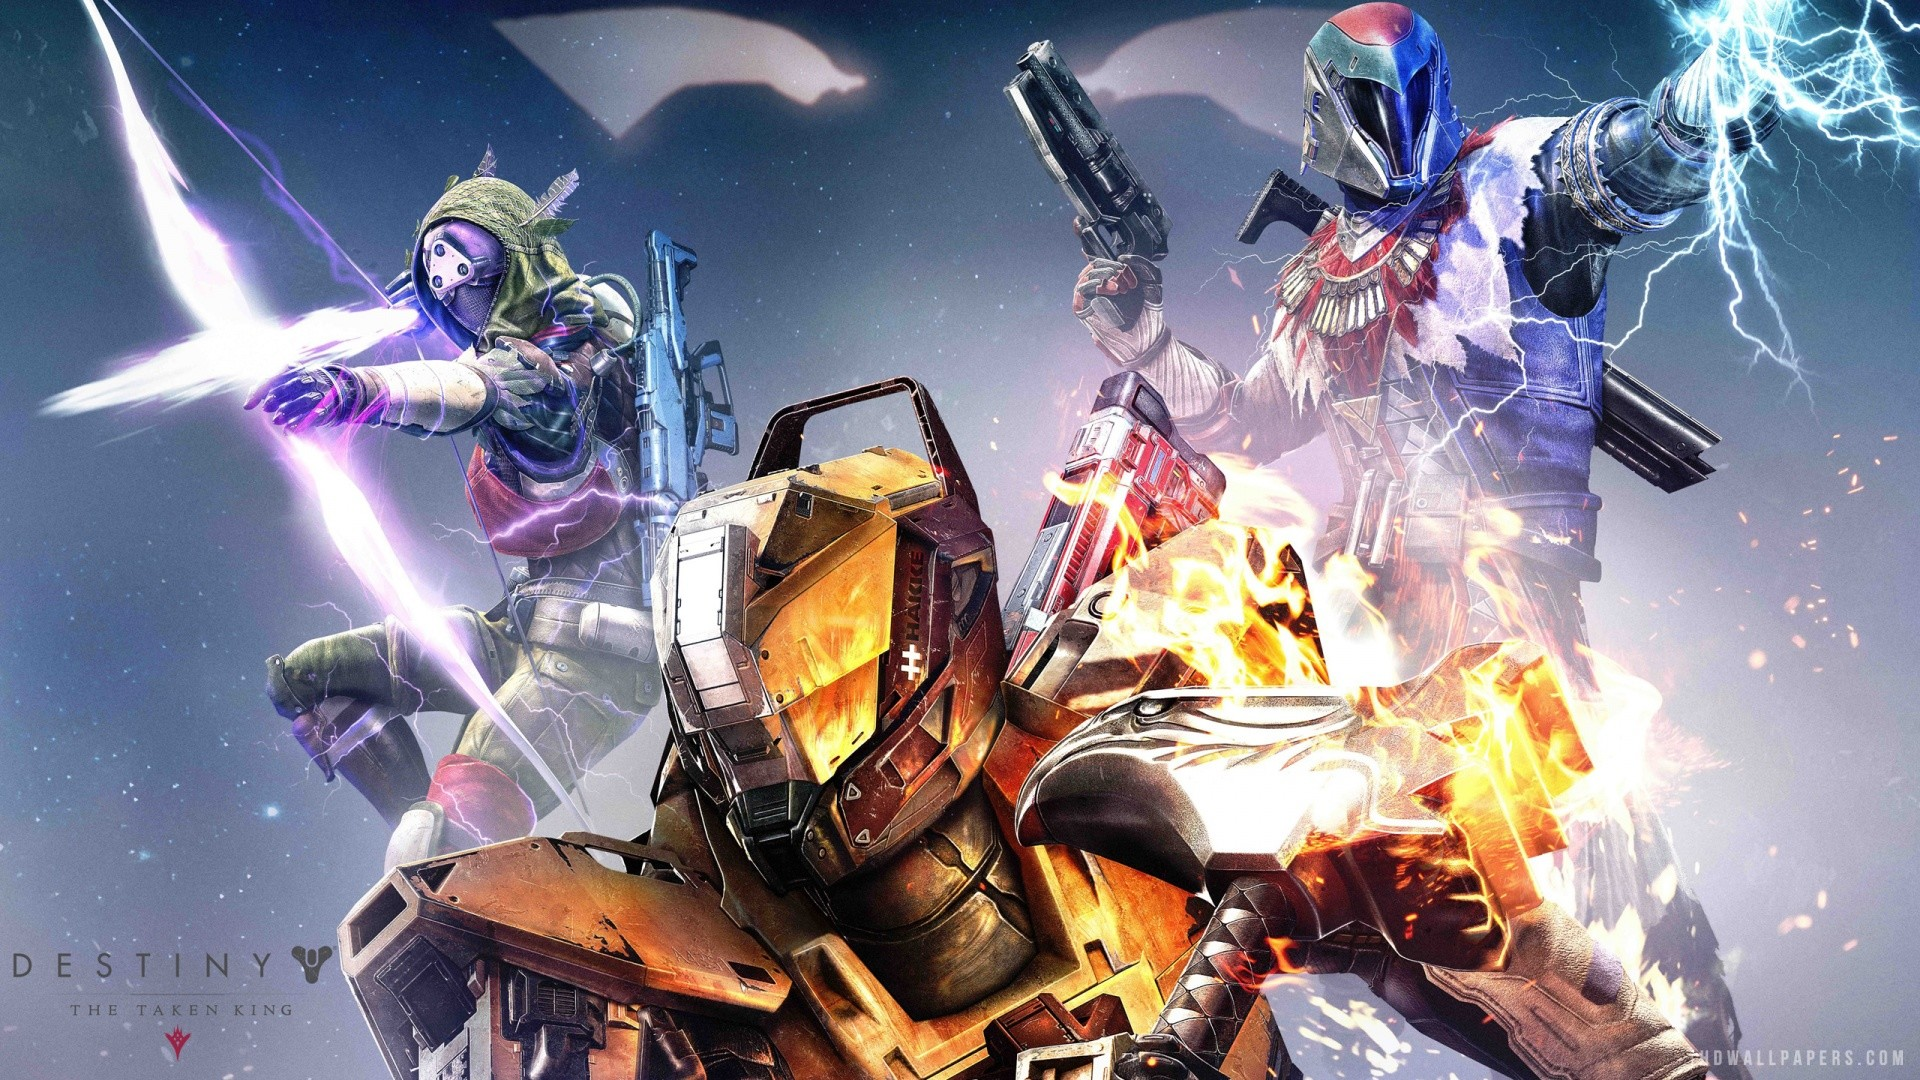 1920x1080 Destiny The Taken King Expansion HD Wallpaper - iHD Wallpapers